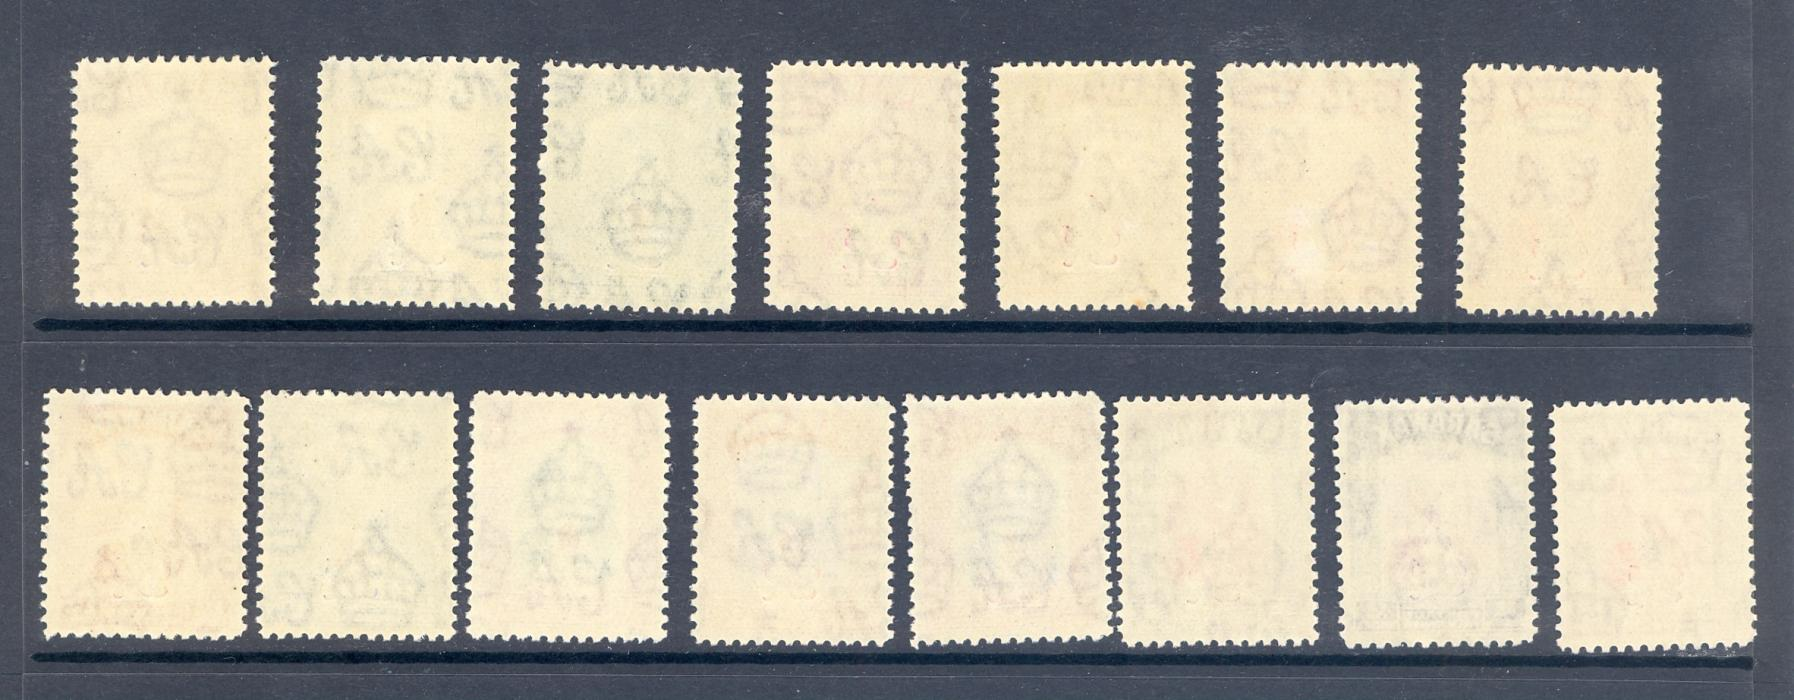 SARAWAK SG 150-64 1947 GVI DEFINITIVE SET UNMOUNTED MINT